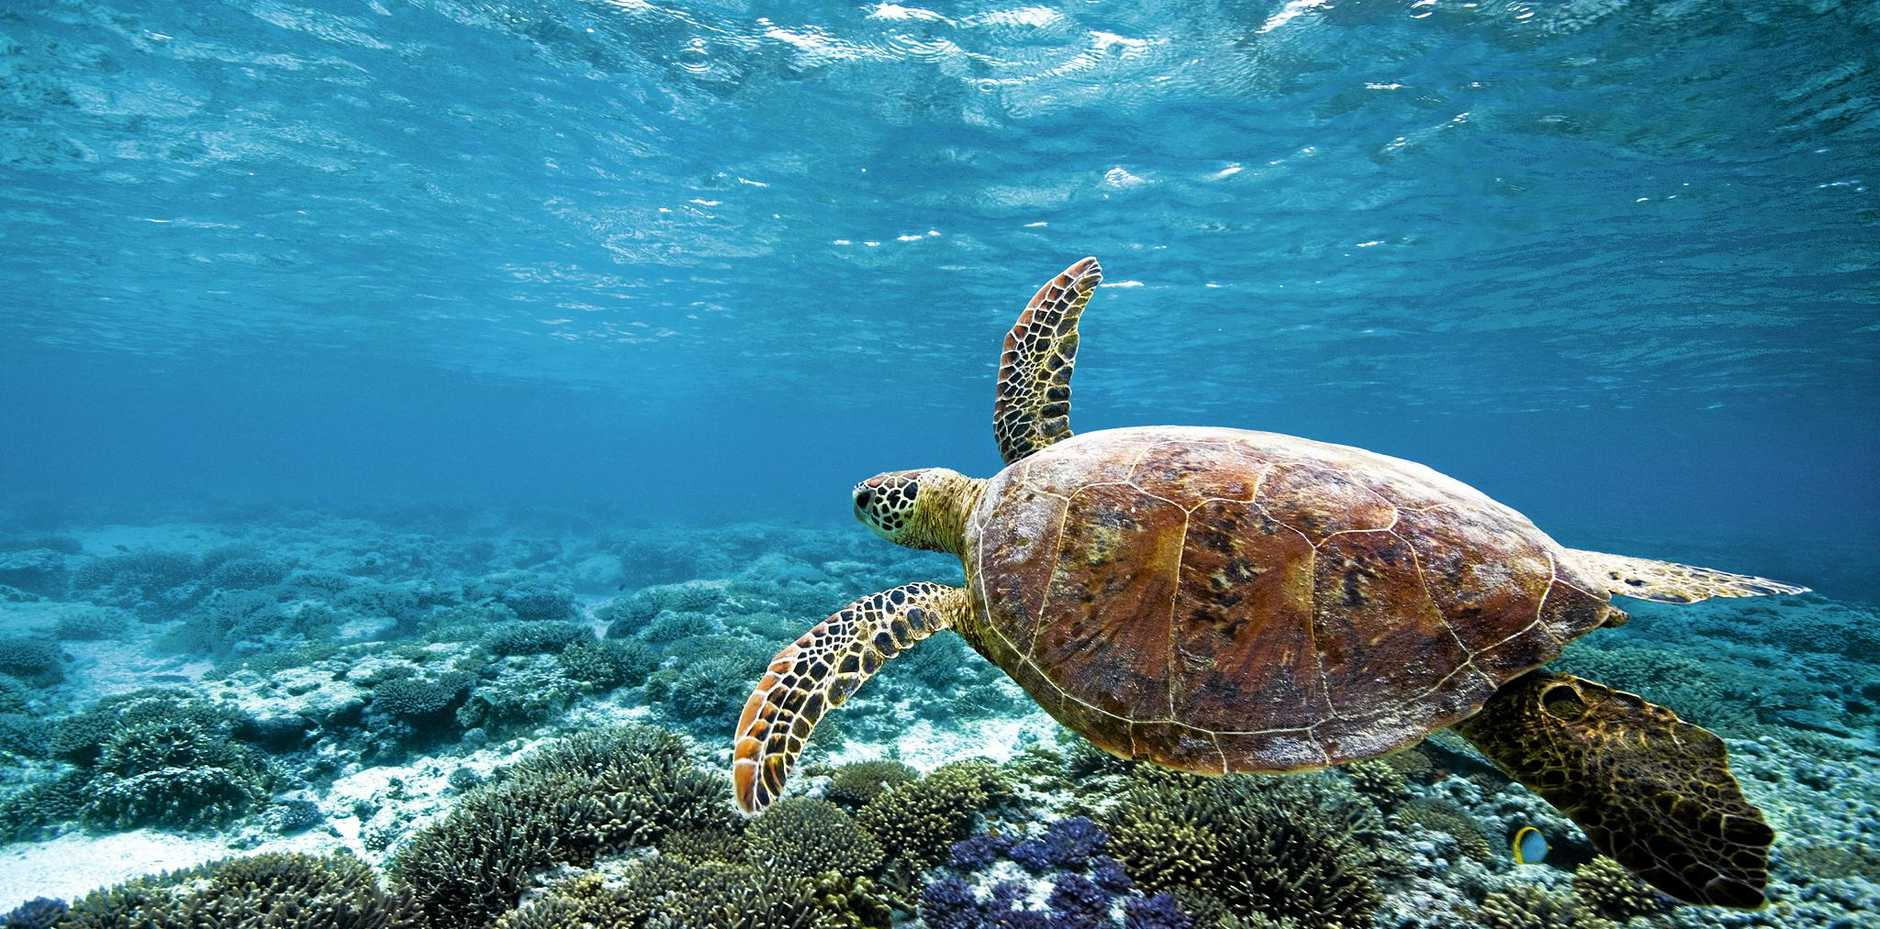 FLIPPING GOOD NEWS: More visitors are coming to the Southern Great Barrier Reef region, and they're spending more.